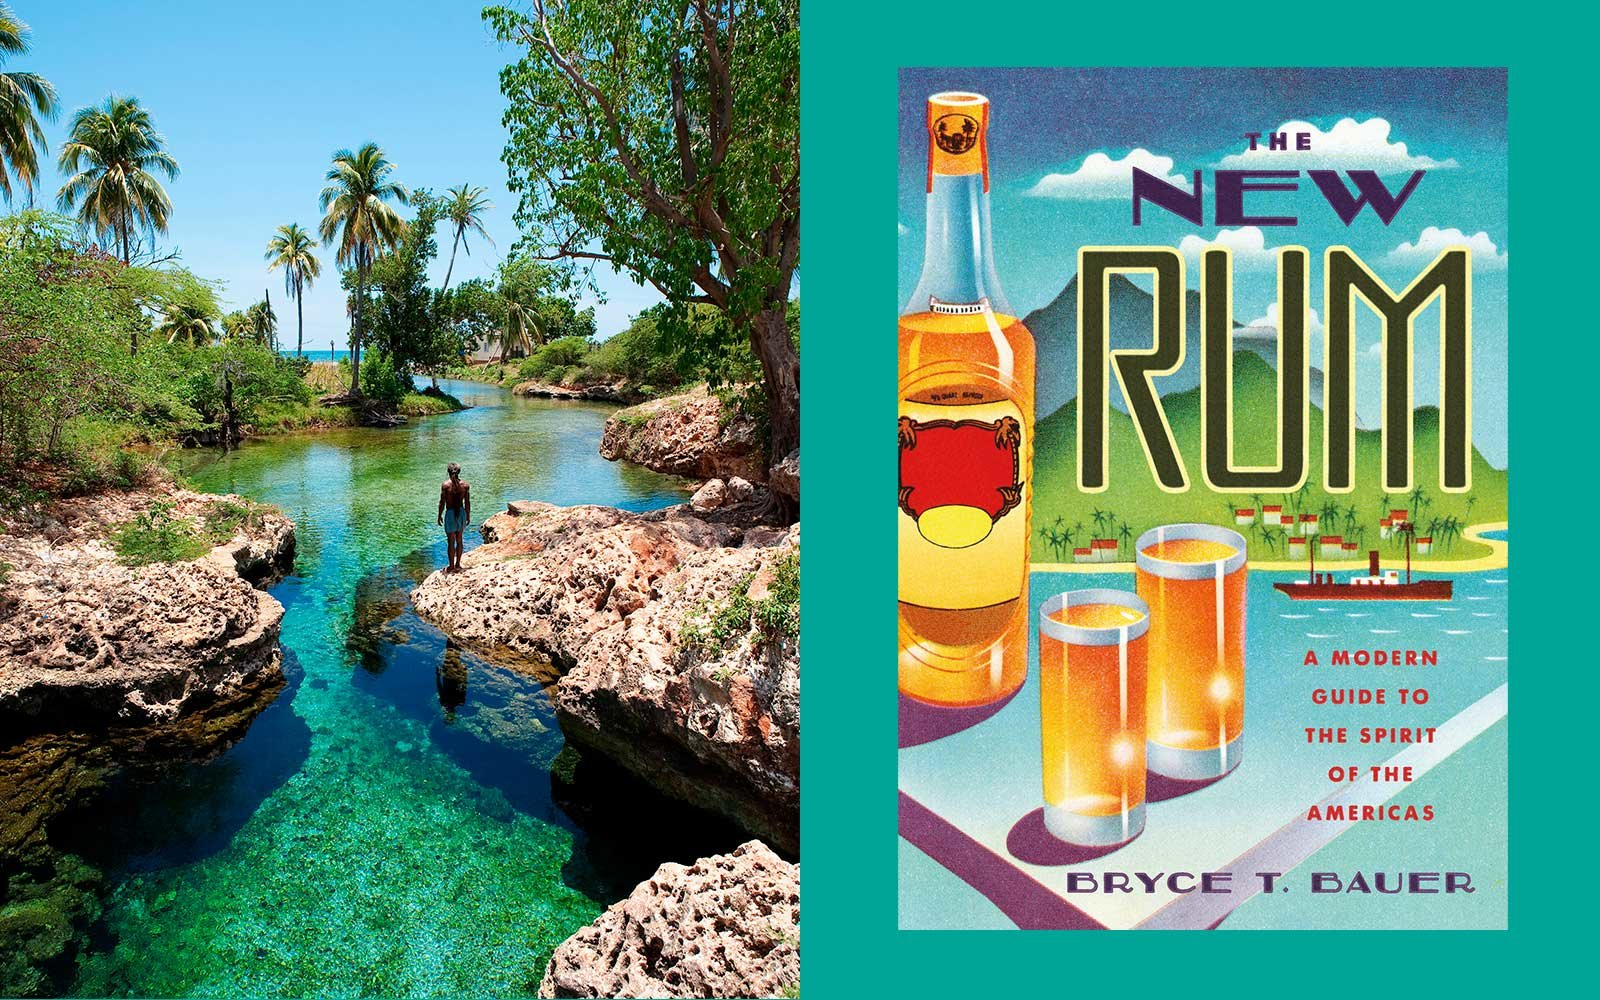 Black River in St Elizabeth, Jamaica and the book New Rum